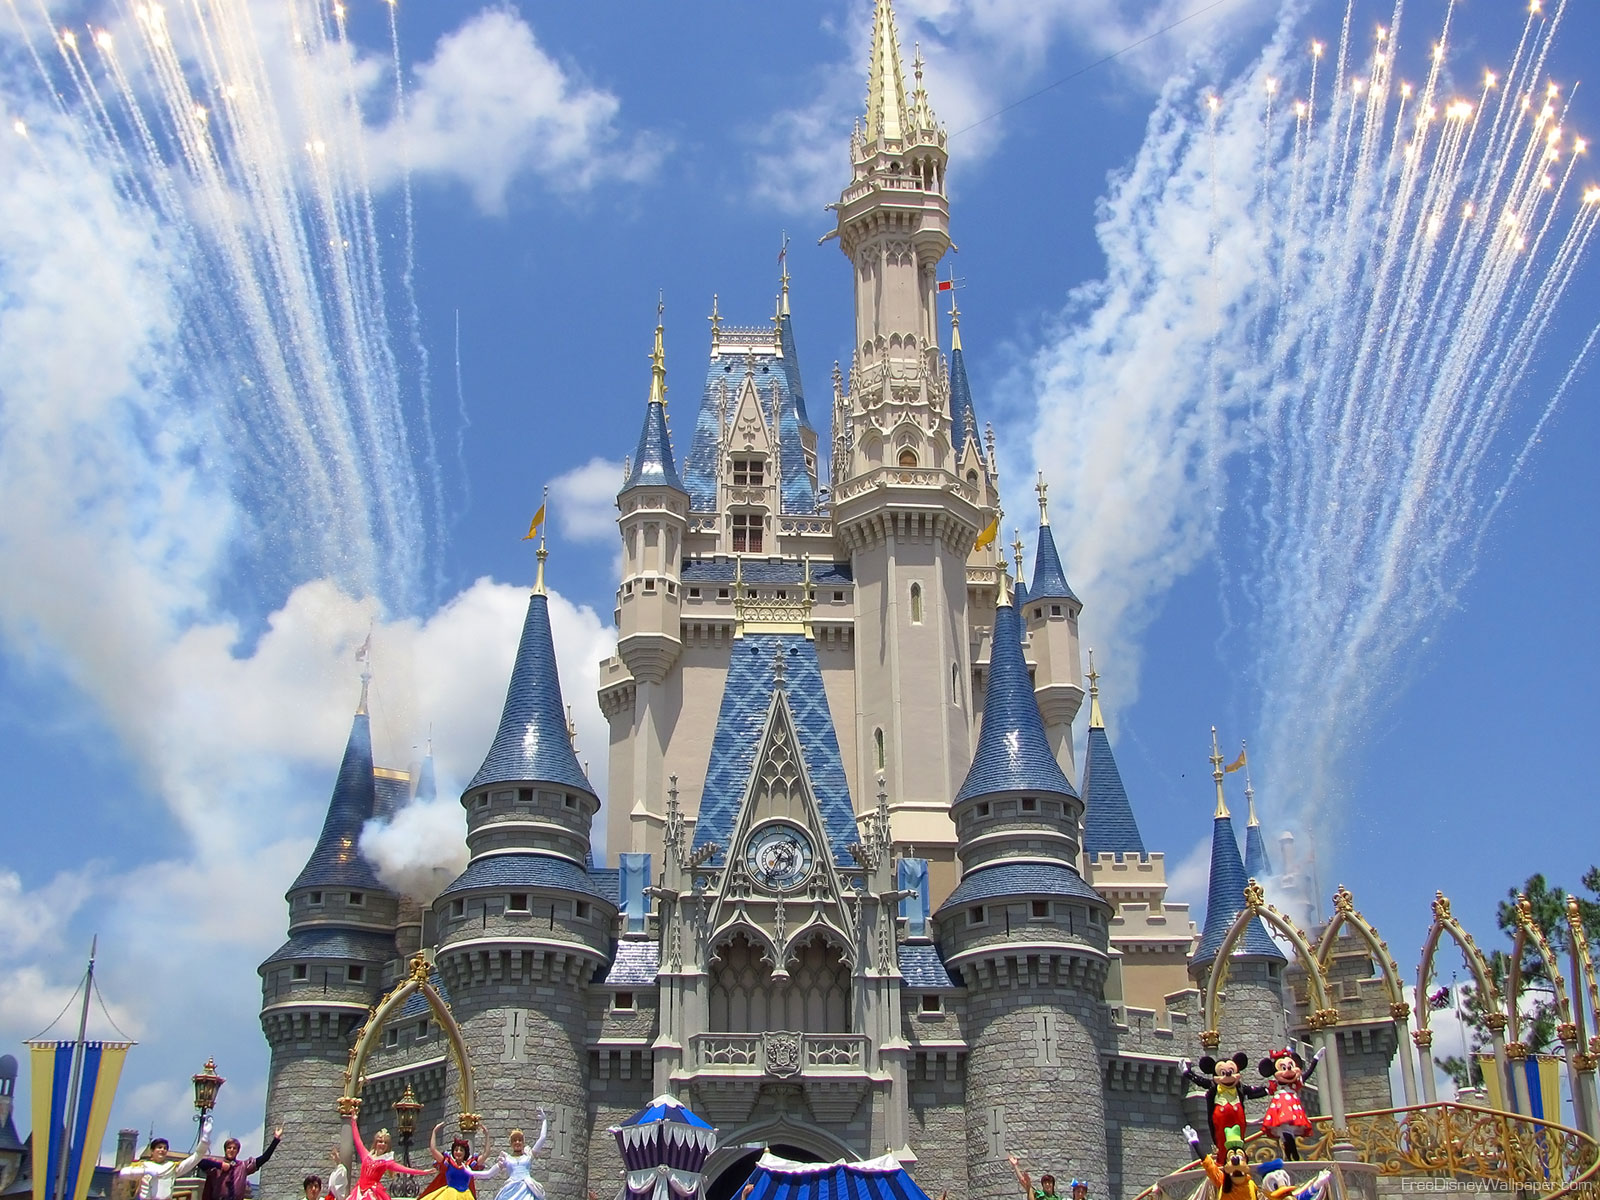 Disney Wallpaper Disney Wallpapers Cinderella Castle 1600x1200